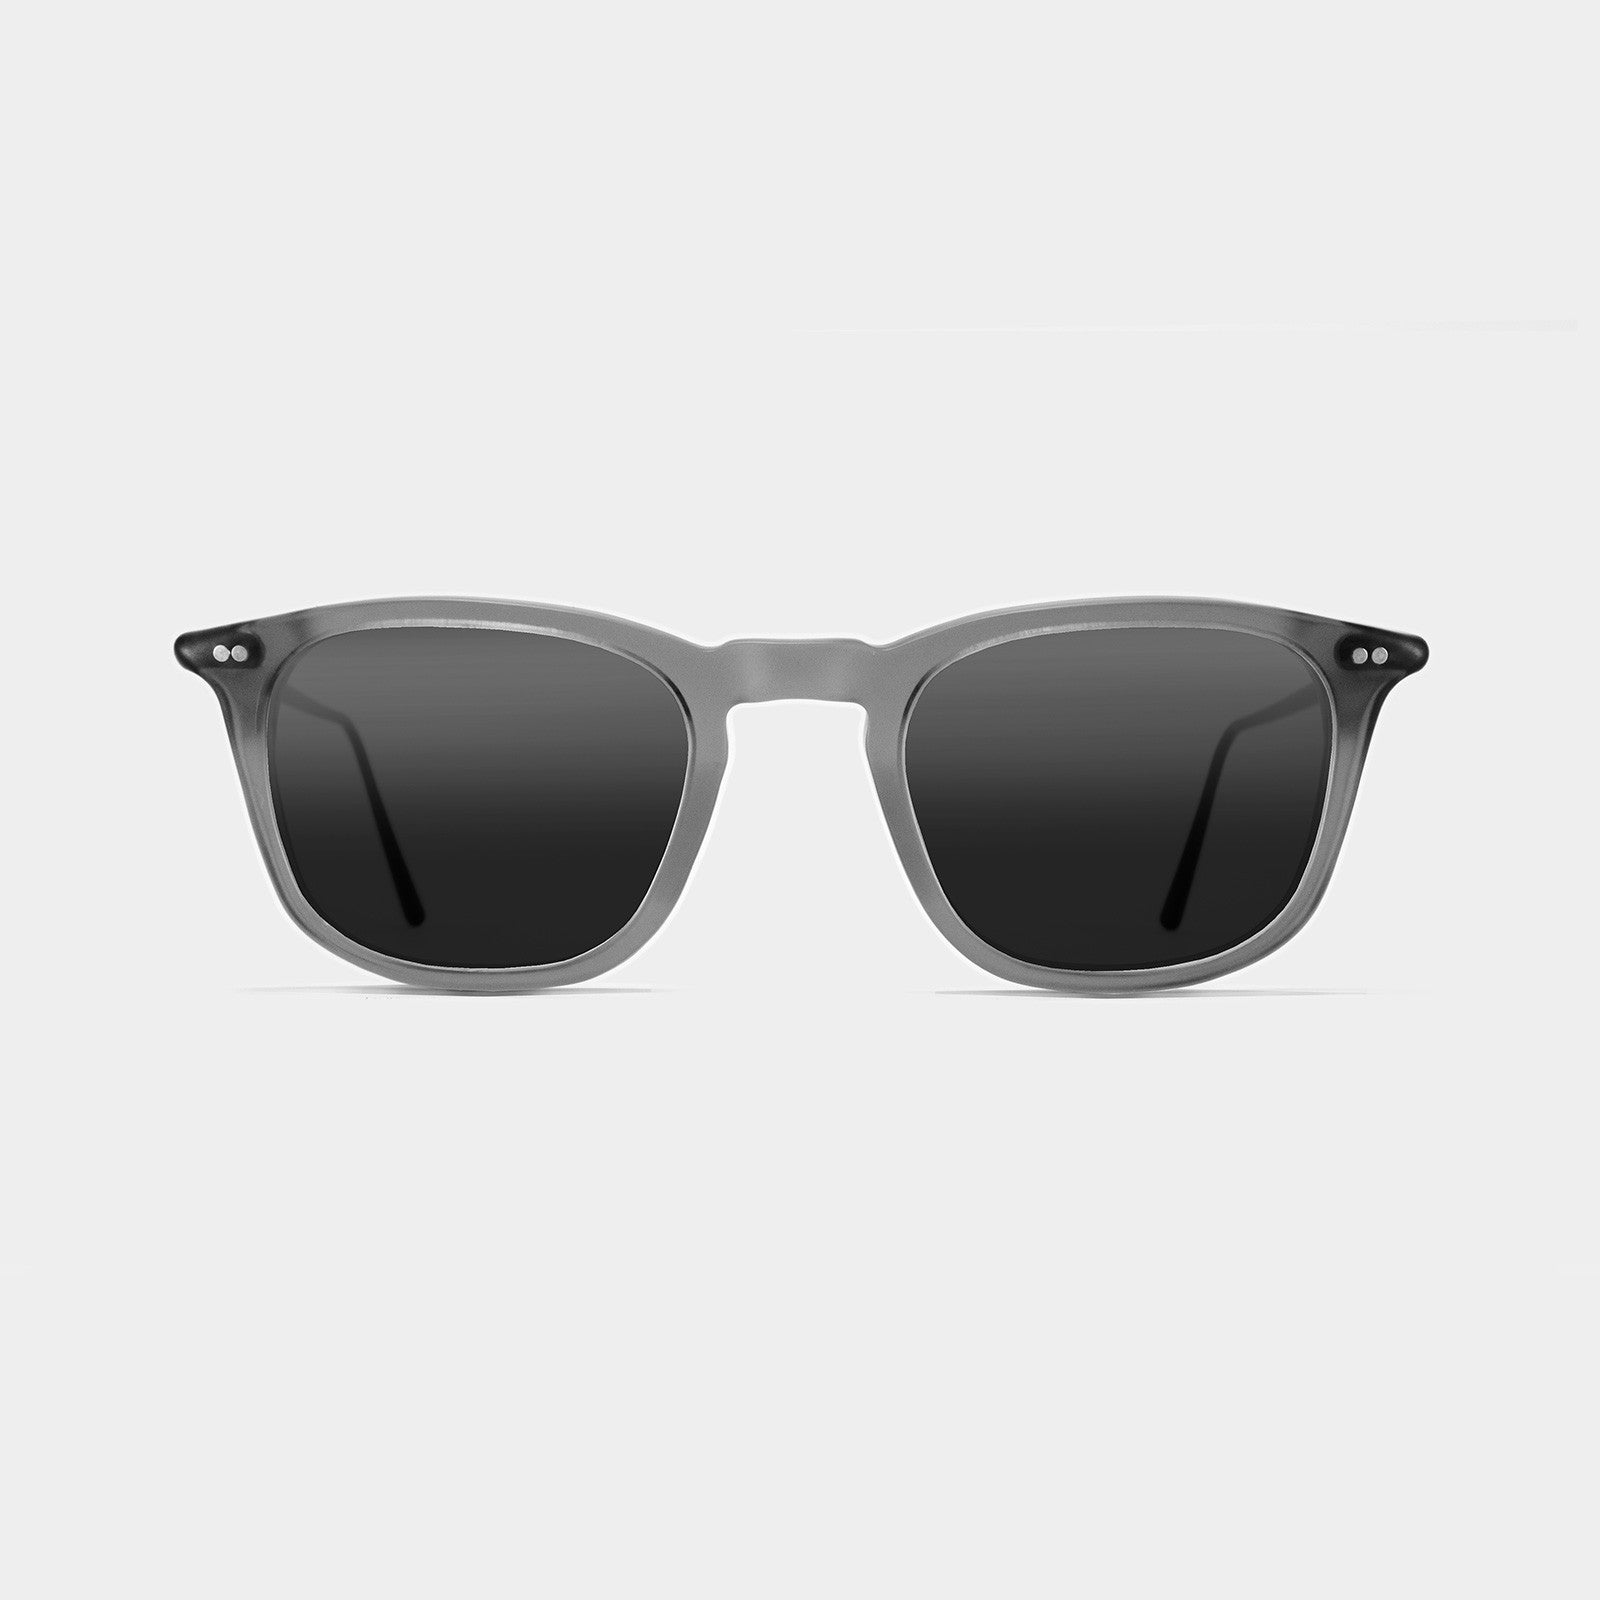 Profile GRY sunglasses